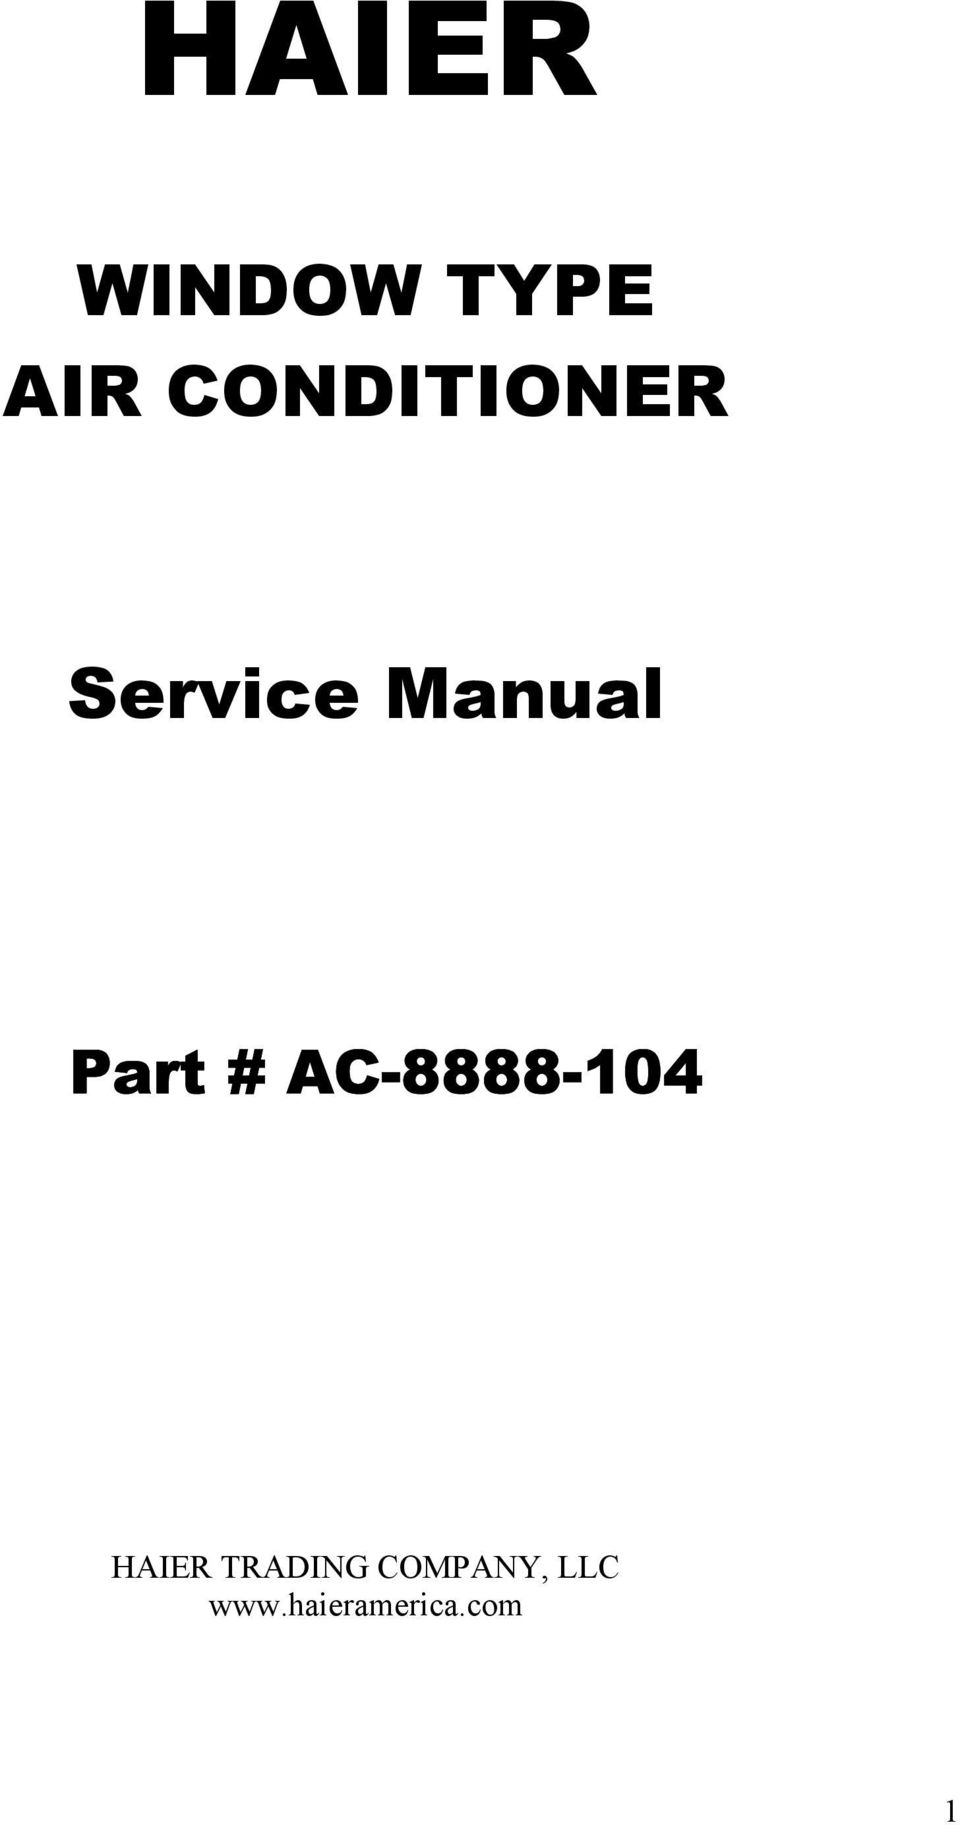 haier window type air conditioner  service manual  part